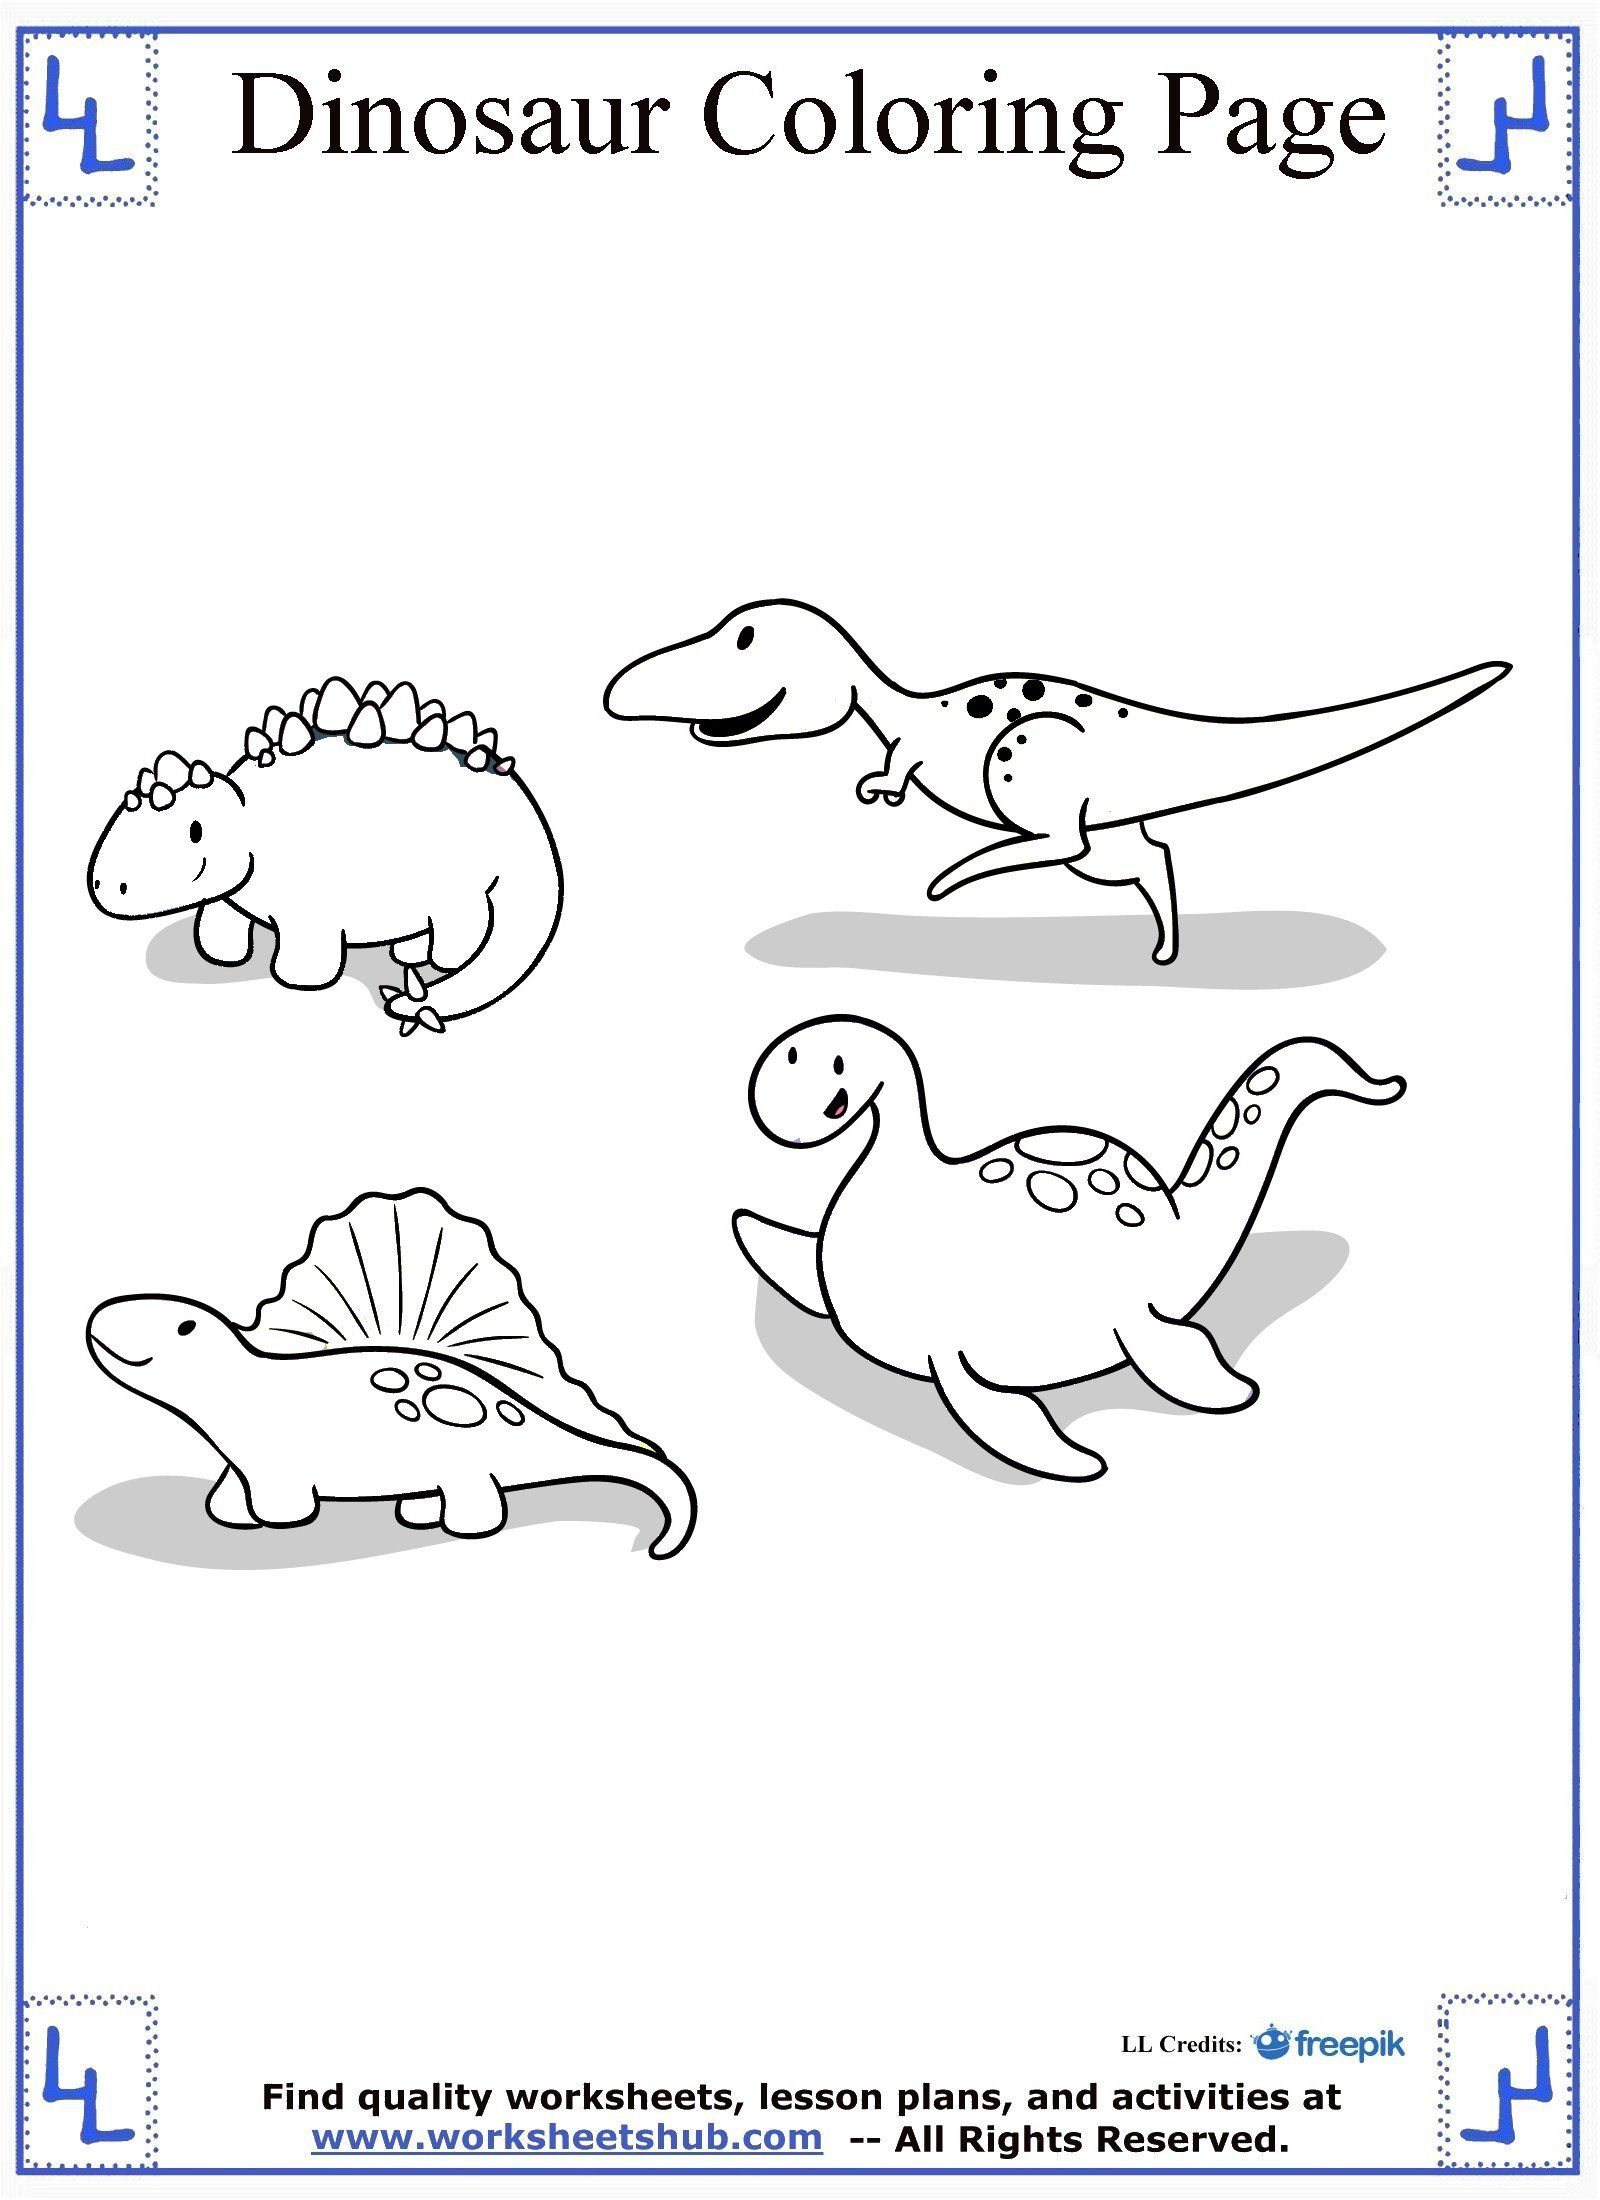 21 Great Photo Of Dinosaur Coloring Pages Dinosaur Coloring